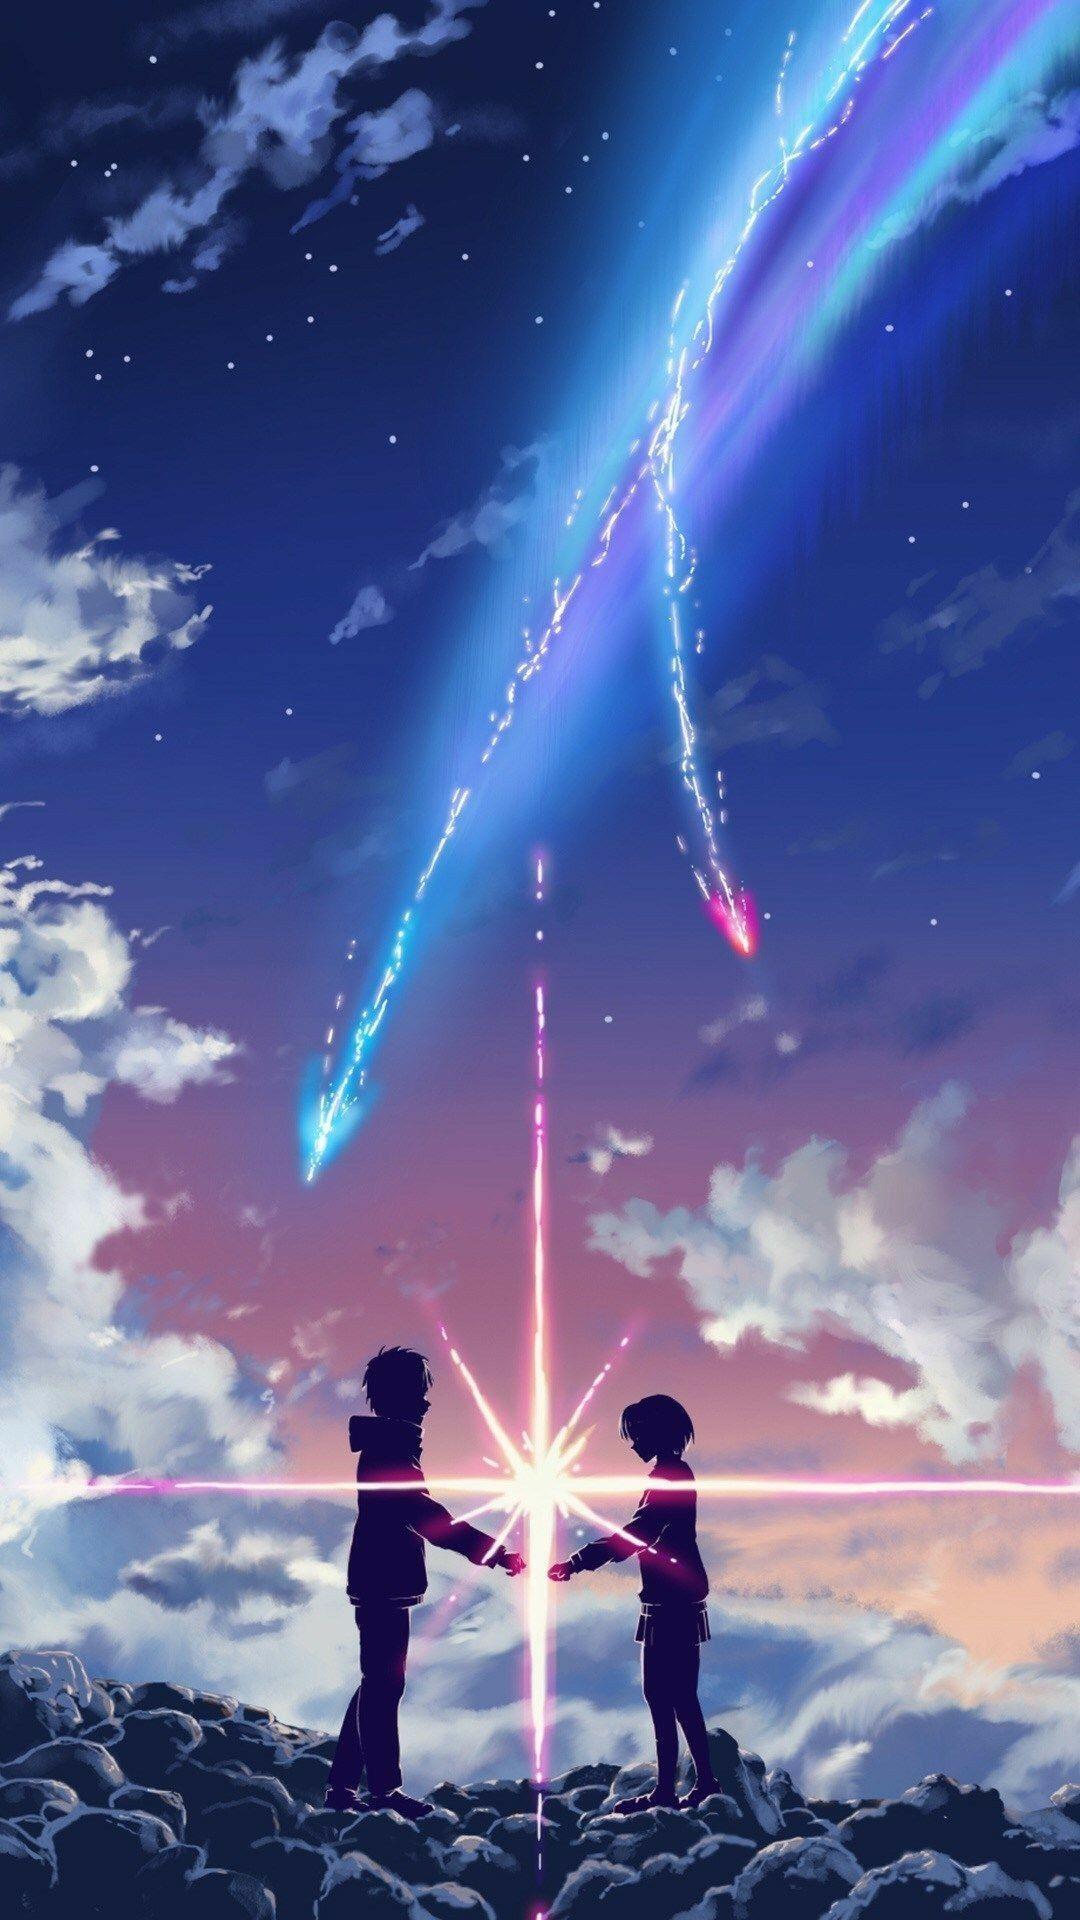 Pin By Milagros Vega On Papeis De Parede Your Name Movie Anime Wallpaper Download Anime Backgrounds Wallpapers